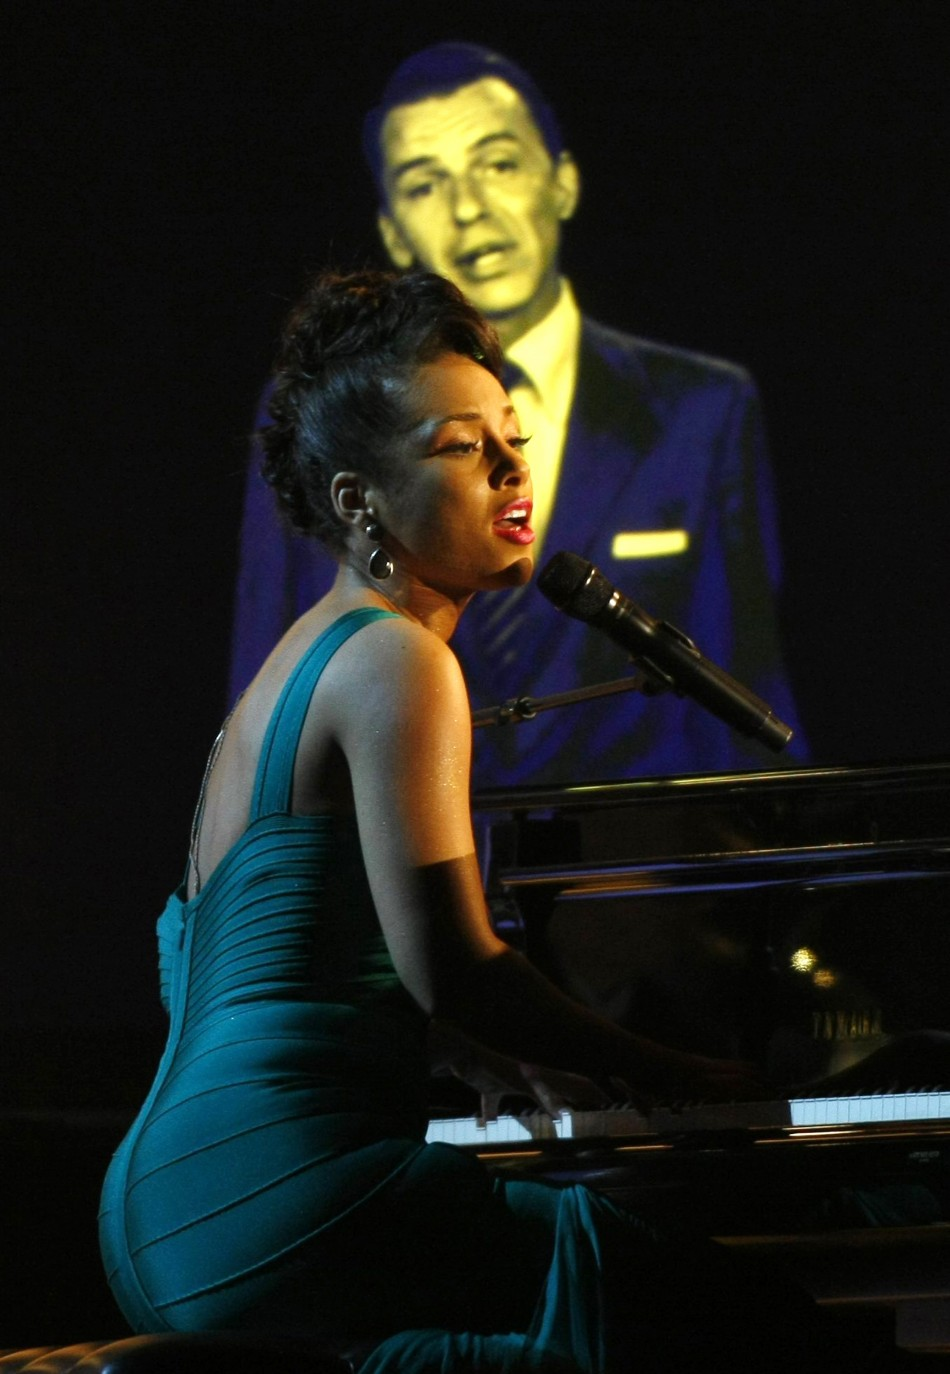 Alicia Keys sings Learnin the Blues with digital Frank Sinatra at 50th annual Grammy Awards in Los Angeles in February